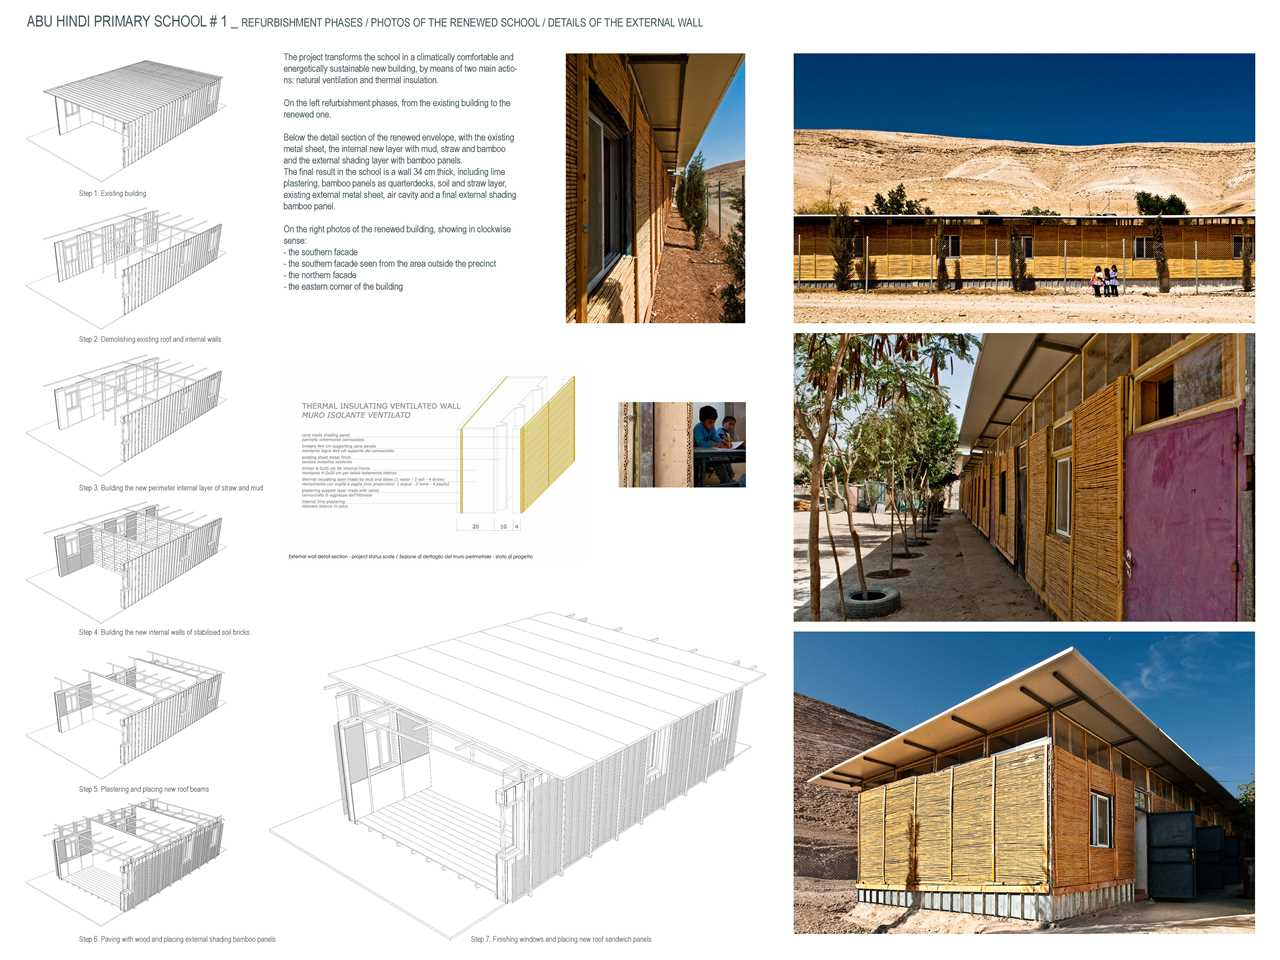 Global Finalist 2012: Sustainable refurbishment of a primary school, Al Azarije, Palestine